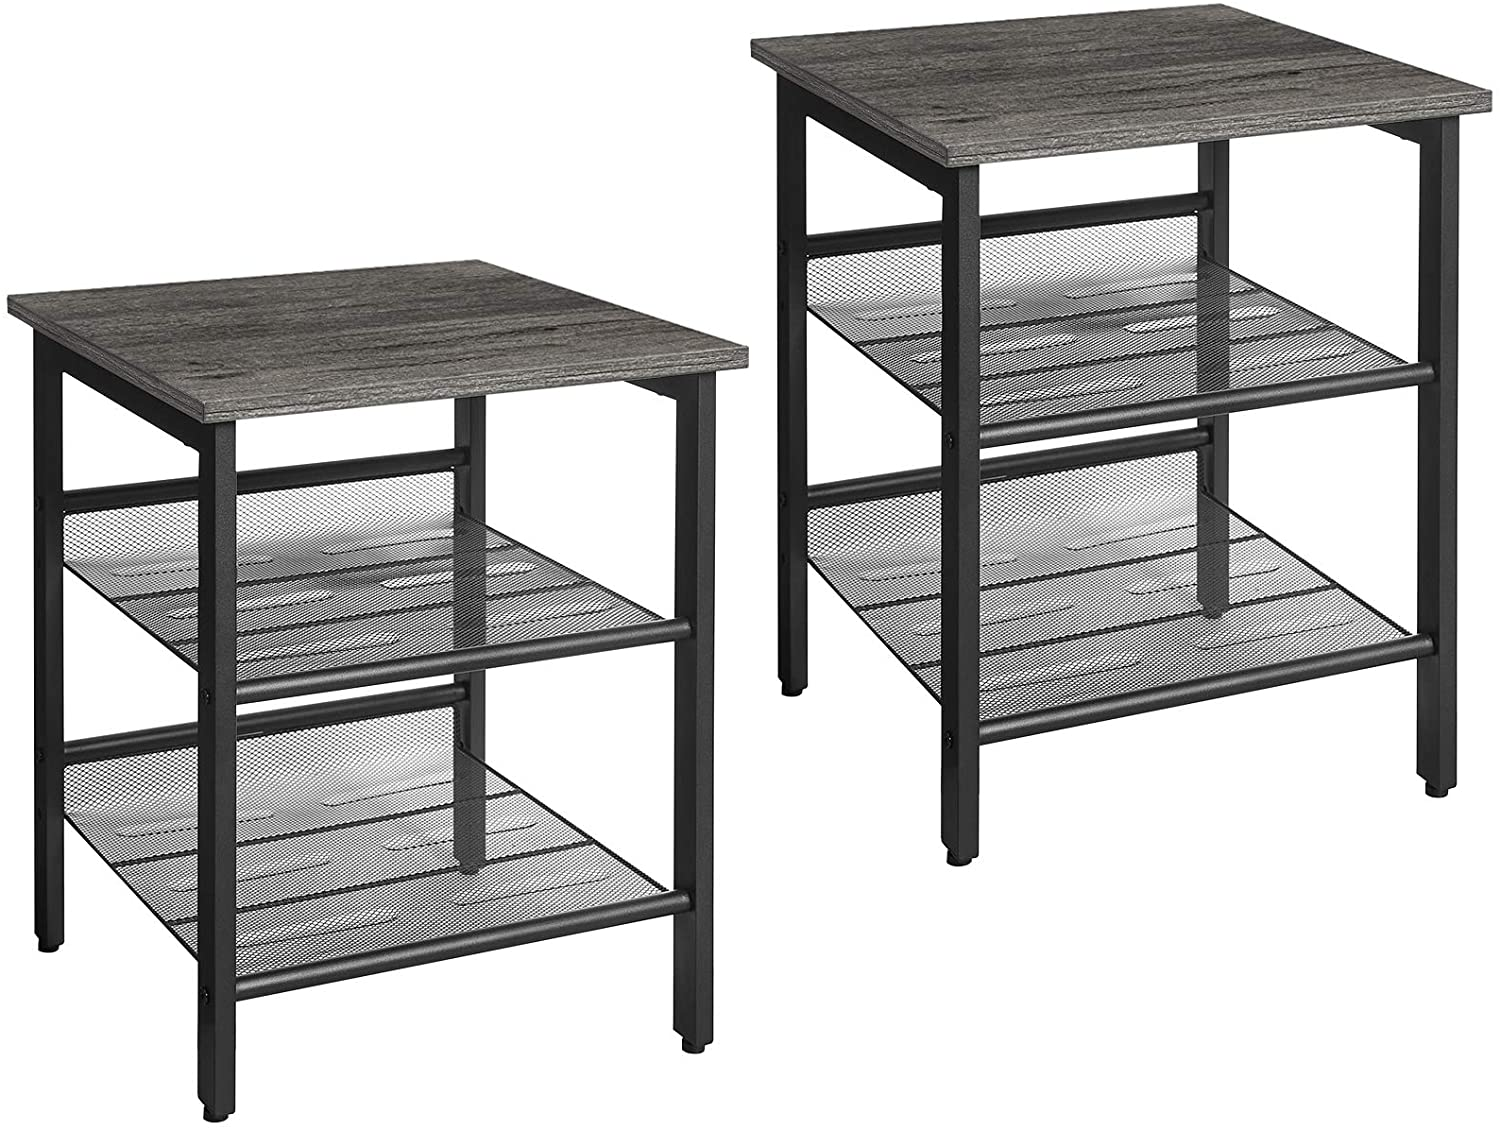 VASAGLE Nightstand, Set of 2 Side Tables, End Tables with Adjustable Mesh Shelves, for Living Room, Bedroom, Industrial, Stable Steel Frame, Easy Assembly, Charcoal Gray and Black ULET024B04